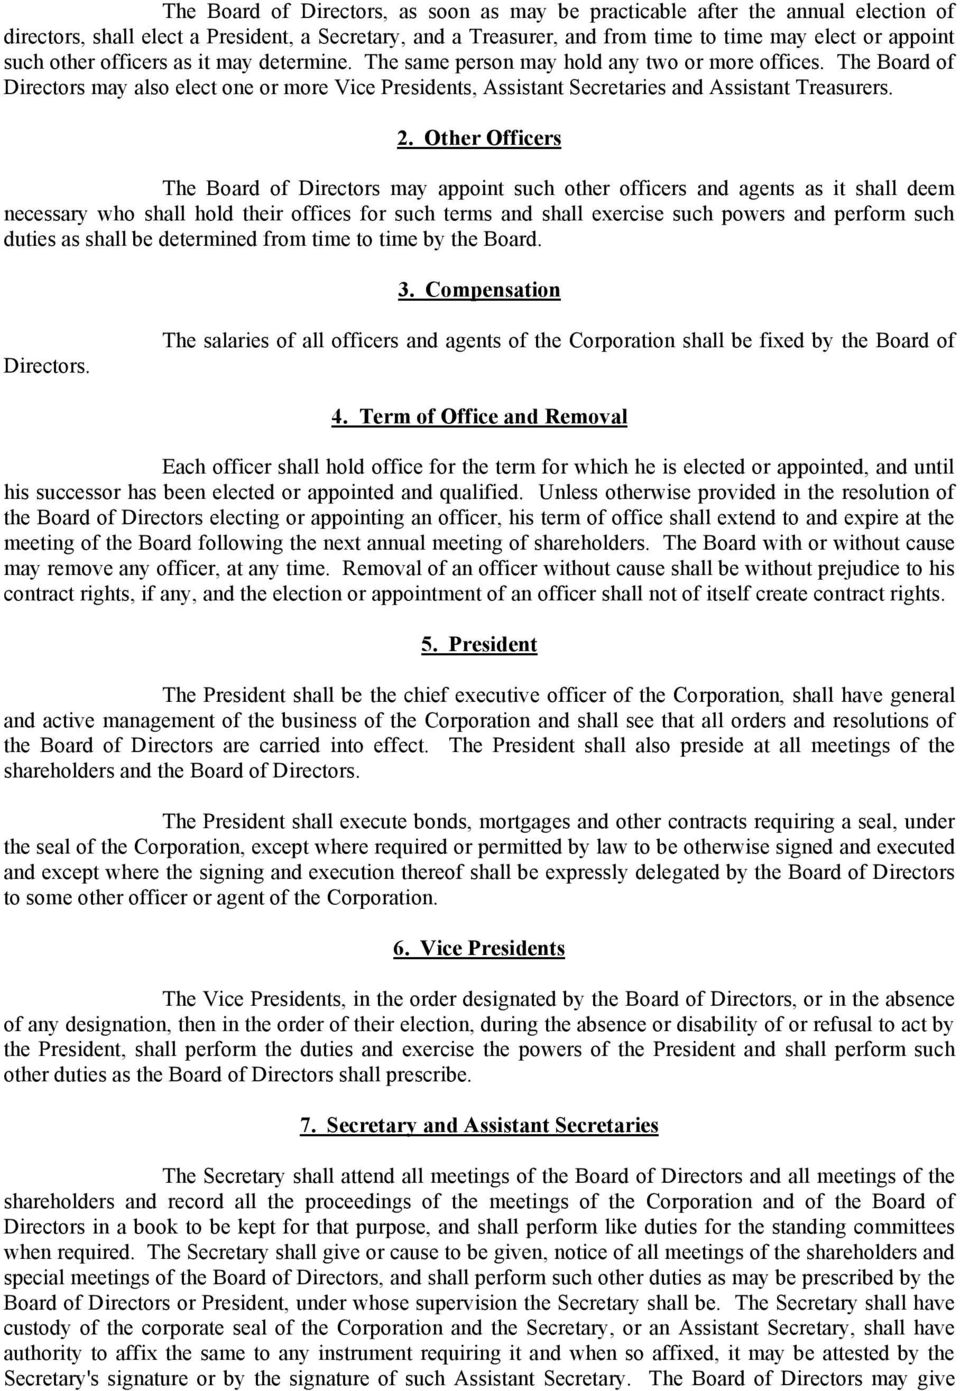 2. Other Officers The Board of Directors may appoint such other officers and agents as it shall deem necessary who shall hold their offices for such terms and shall exercise such powers and perform